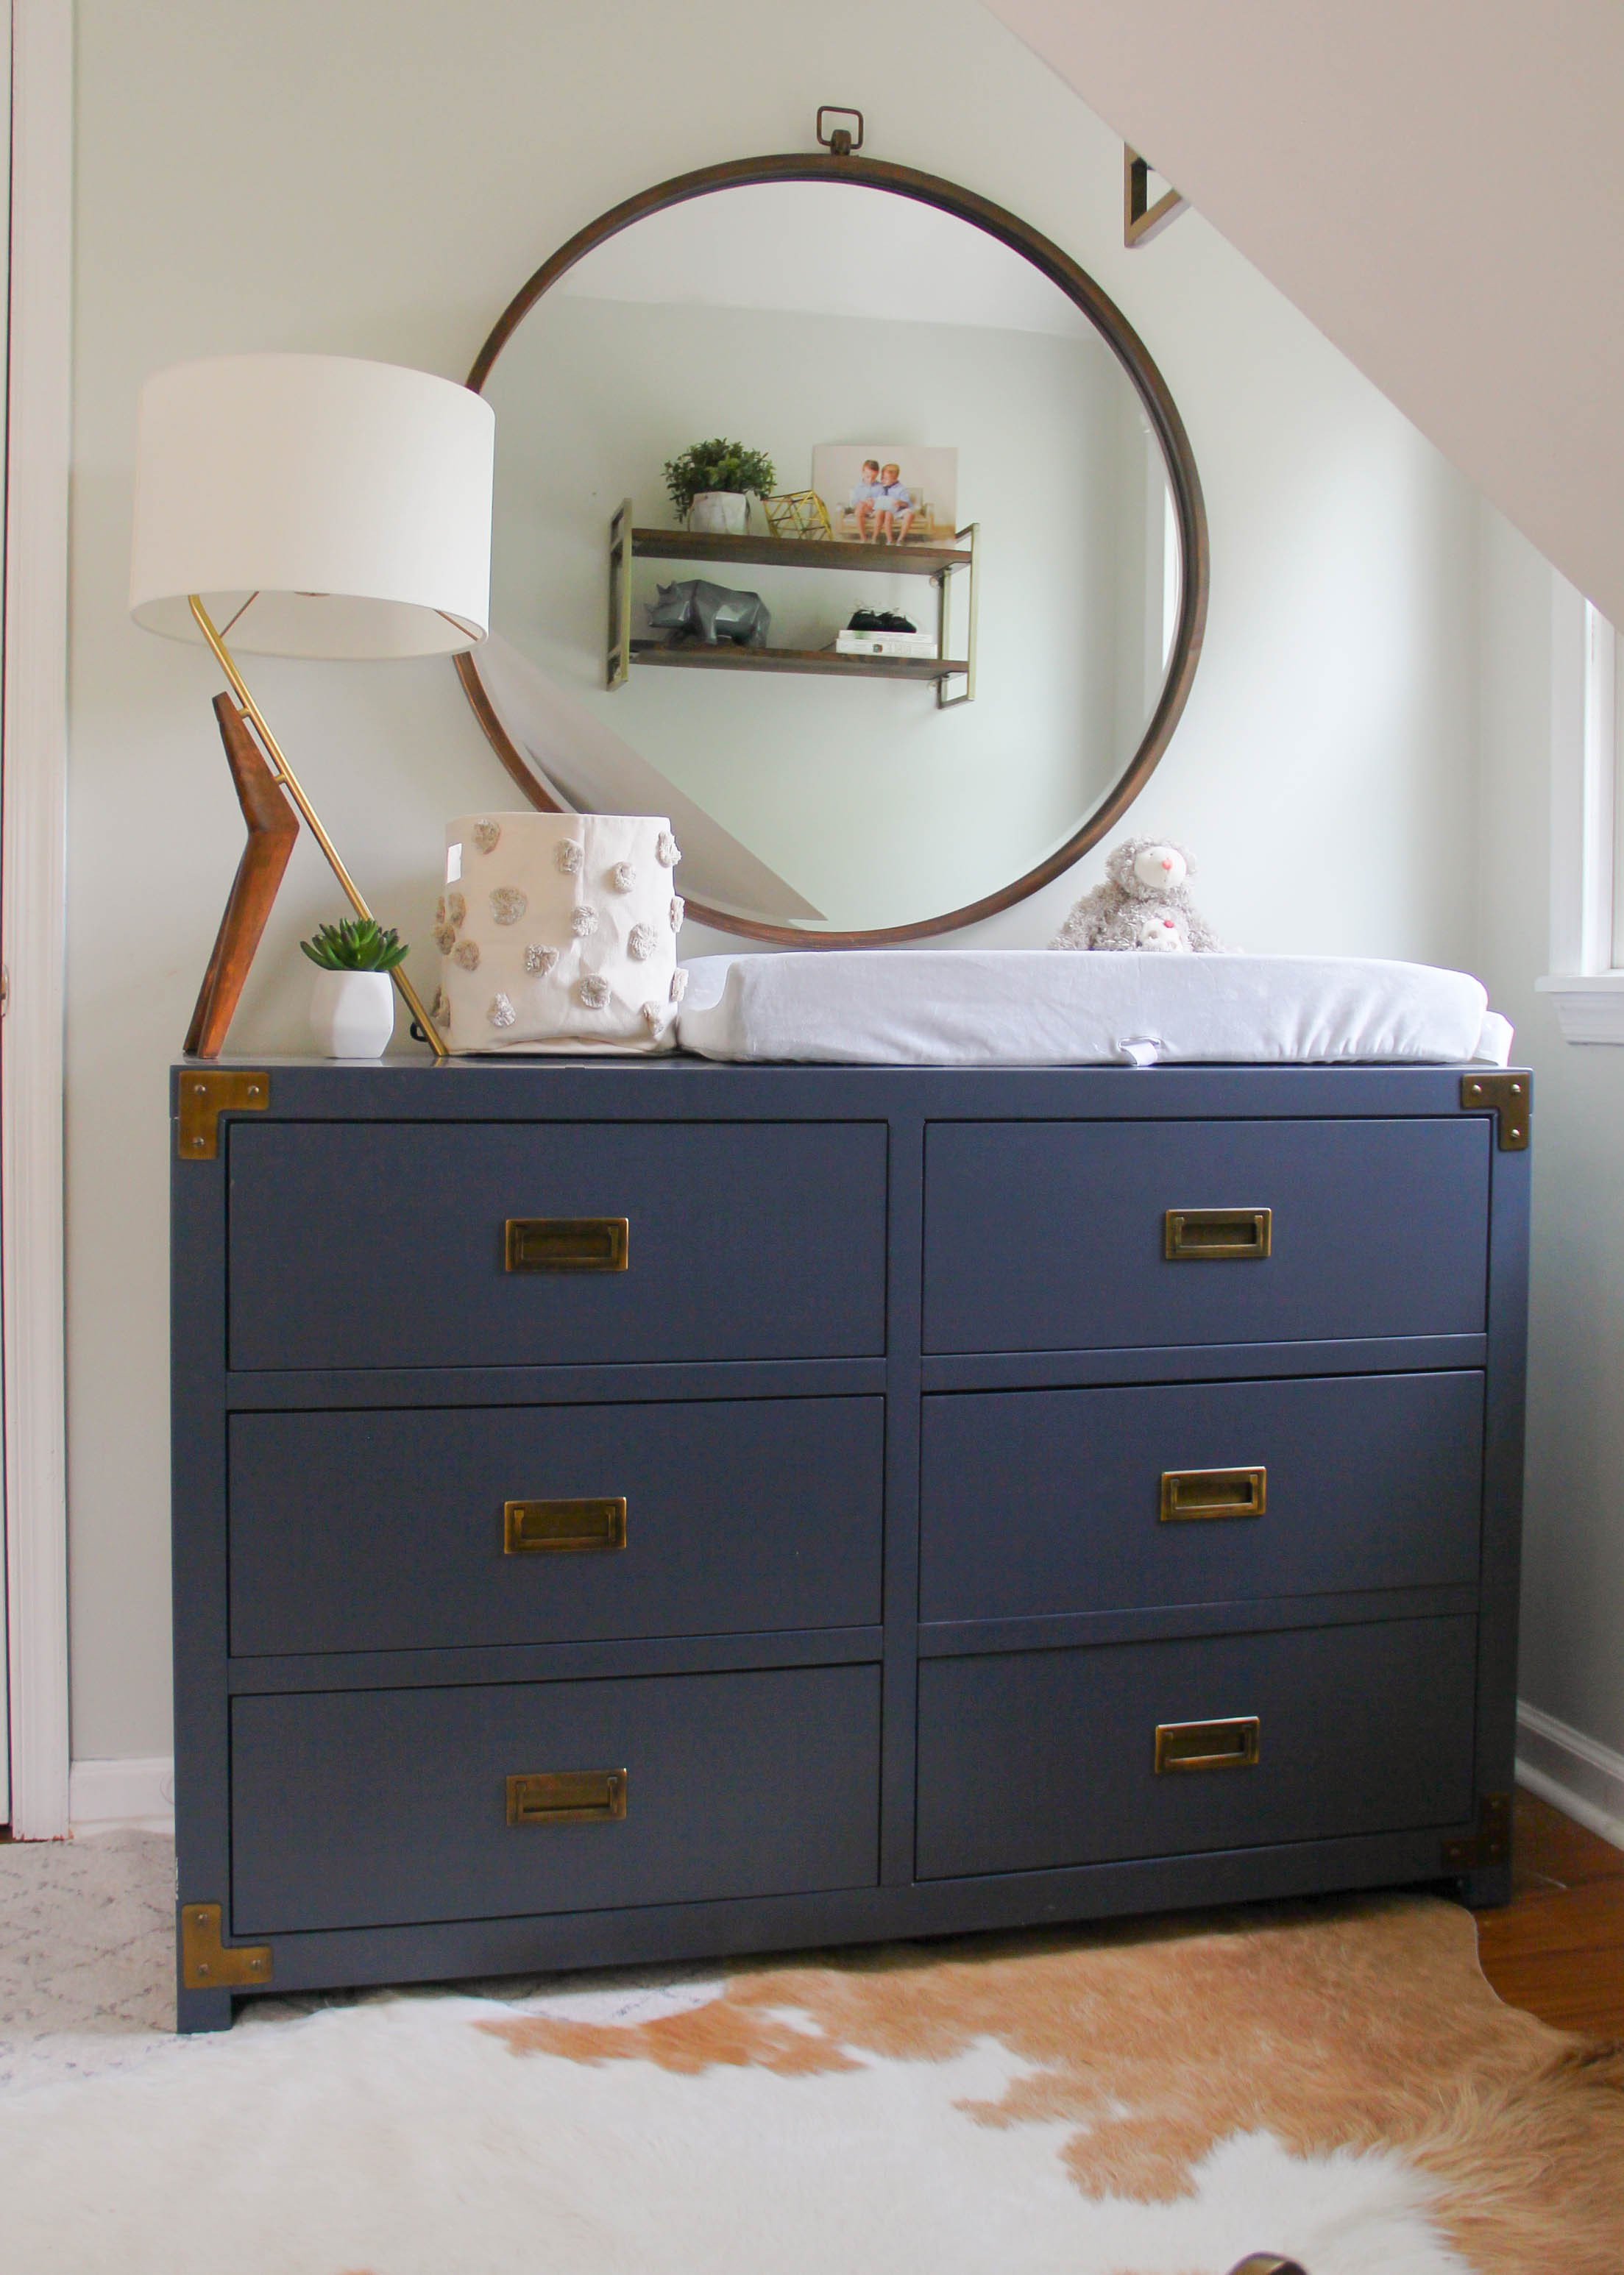 Eclectic Boy's Nursery with Navy Campaign Dresser